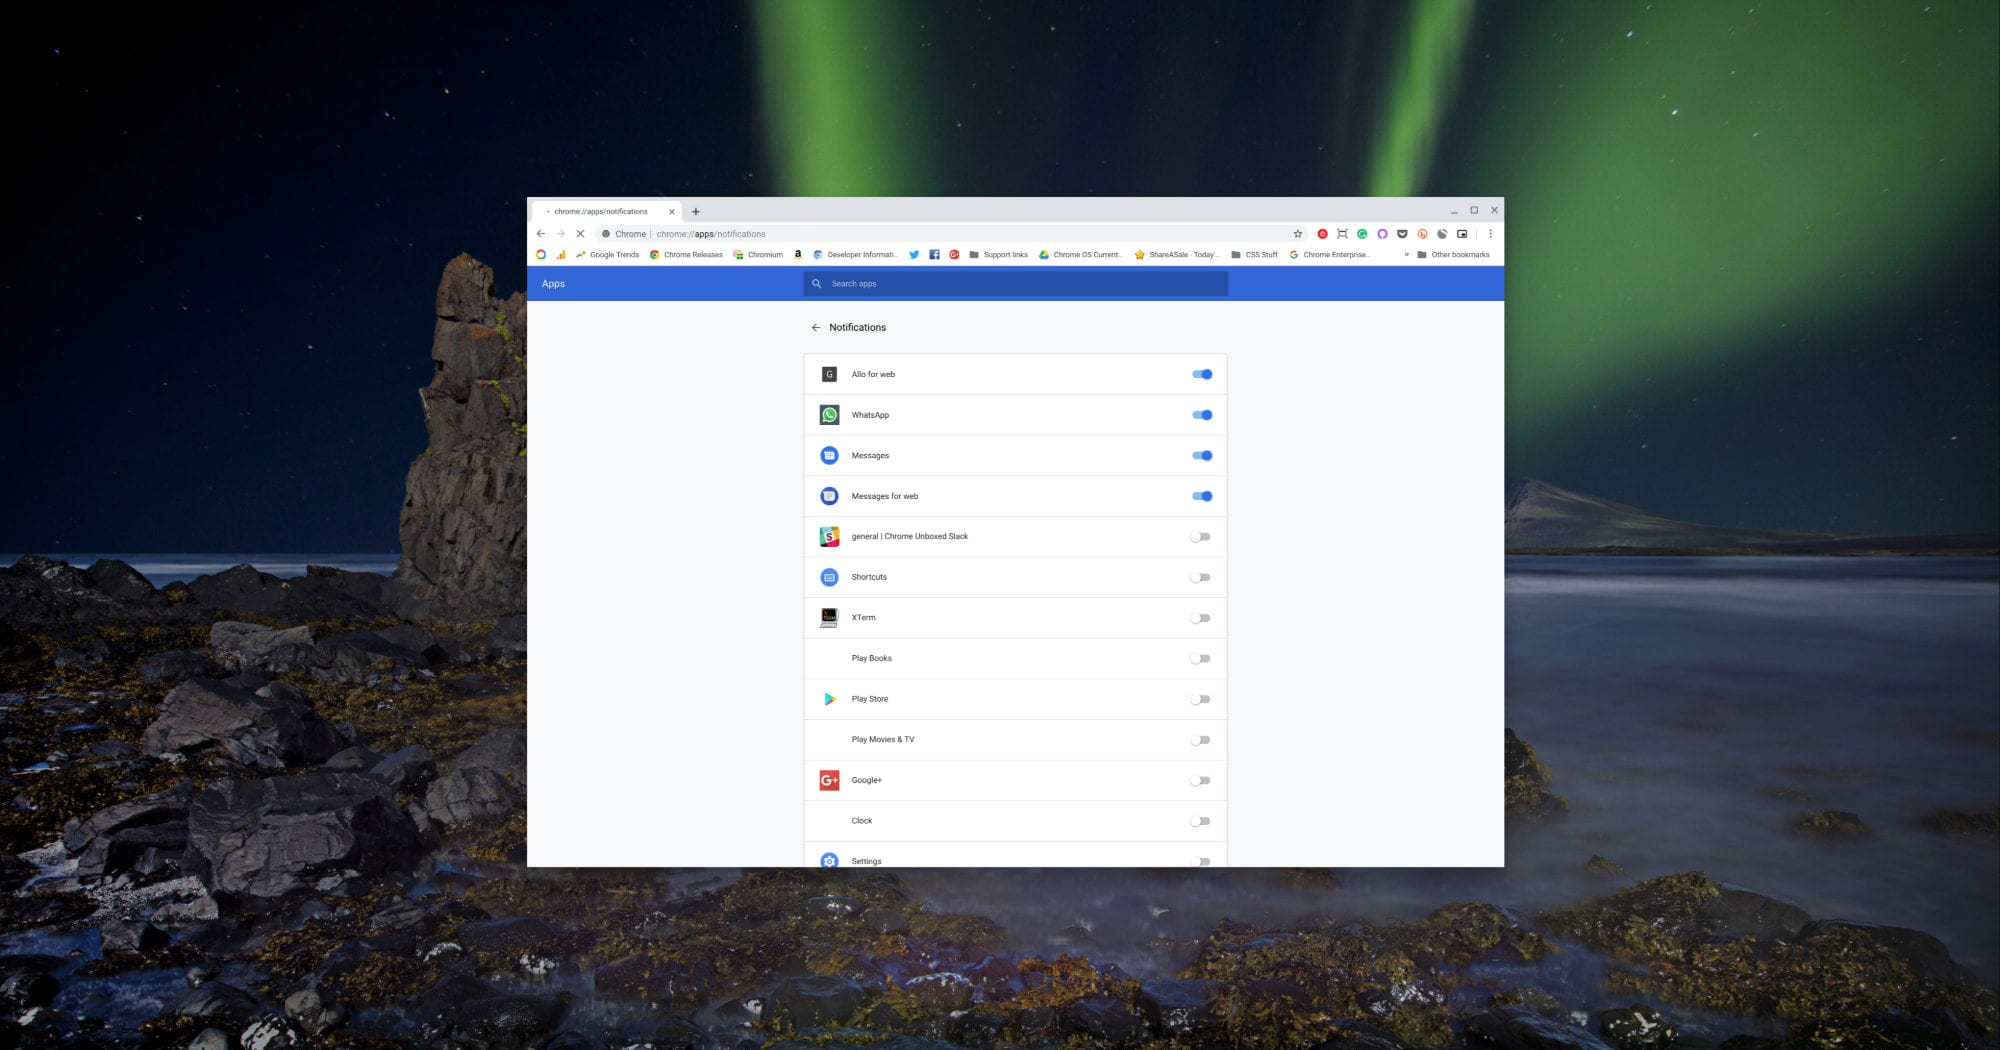 Upcoming 'App Service' For Chromebooks Could Help Simplify Chrome OS' Current App Complexity